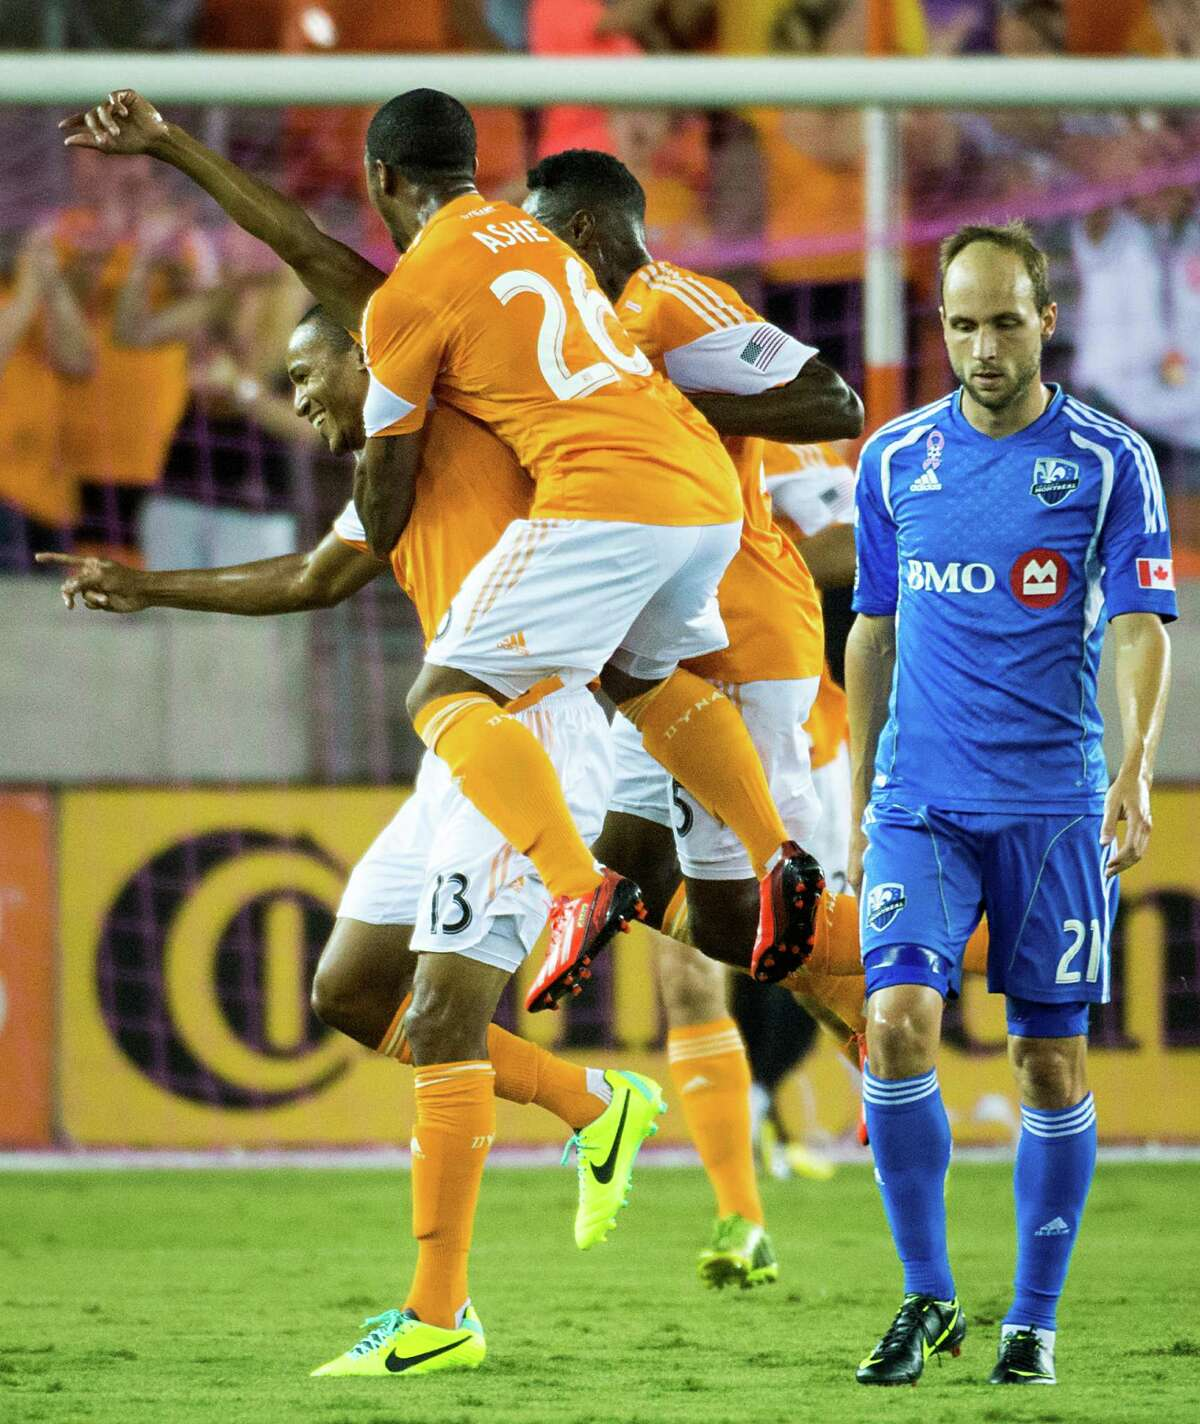 Houston Dynamo midfielder Ricardo Clark (13) celebrates with midfielder Corey Ashe (26) as Montreal Impact midfielder Justin Mapp (21) walks away after Clark scored a goal during the first half of an MLS soccer match on Friday, Oct. 4, 2013, at BBVA Compass Stadium in Houston.